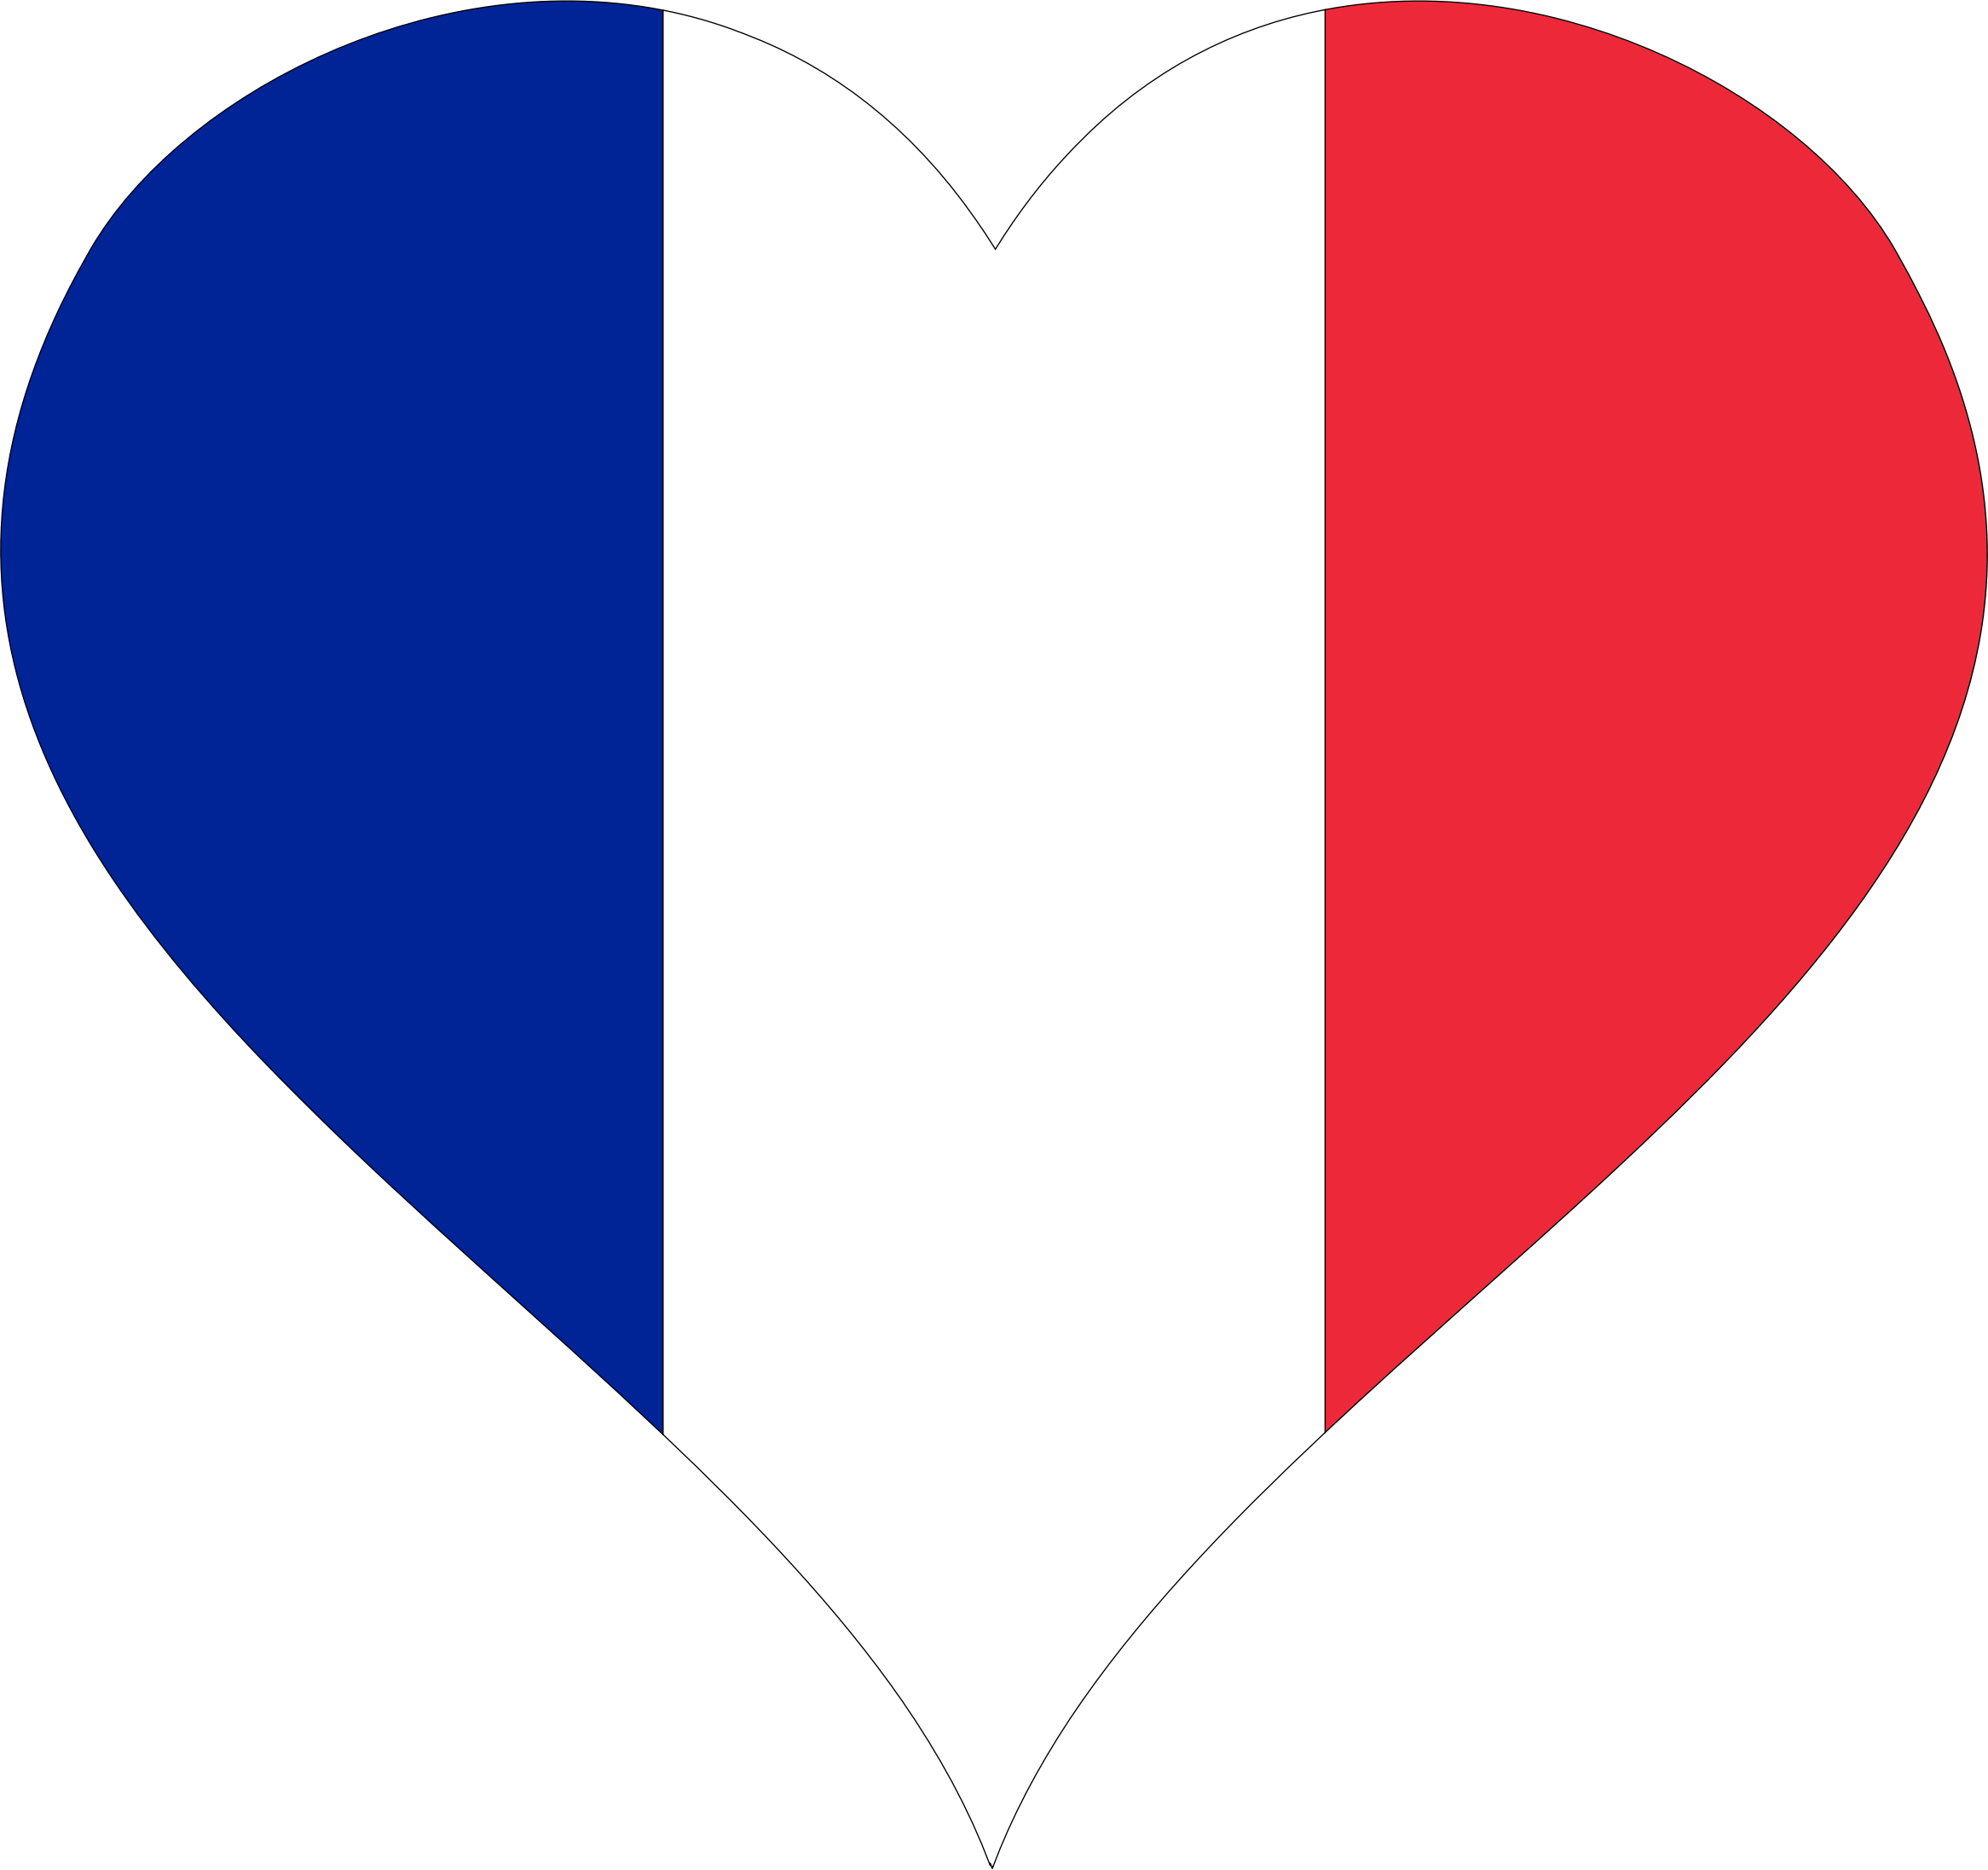 Heart France by GDJ